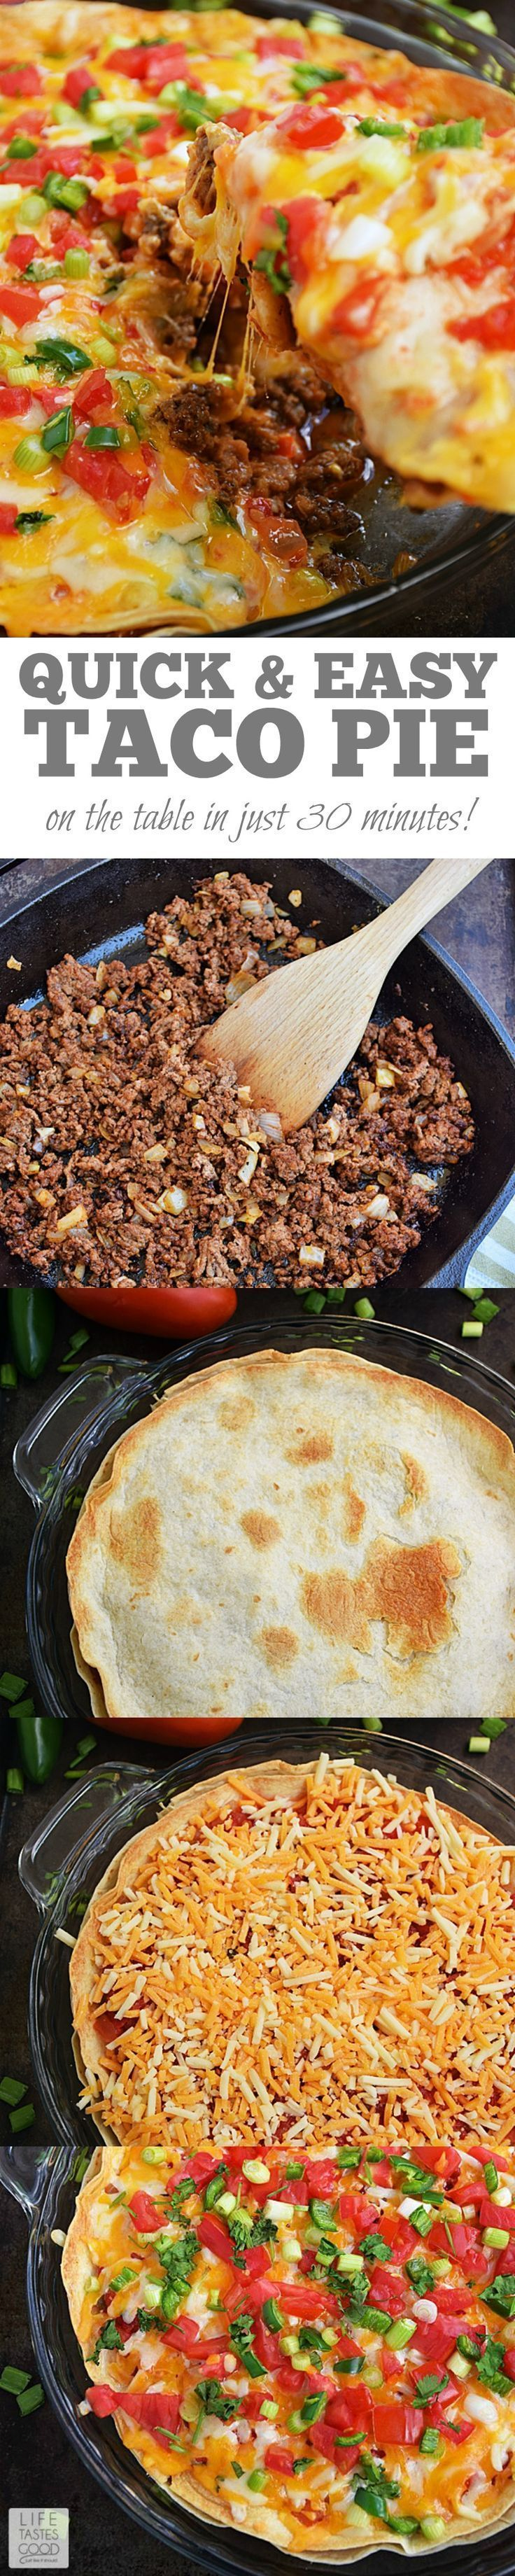 best ideas about taco pie recipes on pinterest taco pie bake